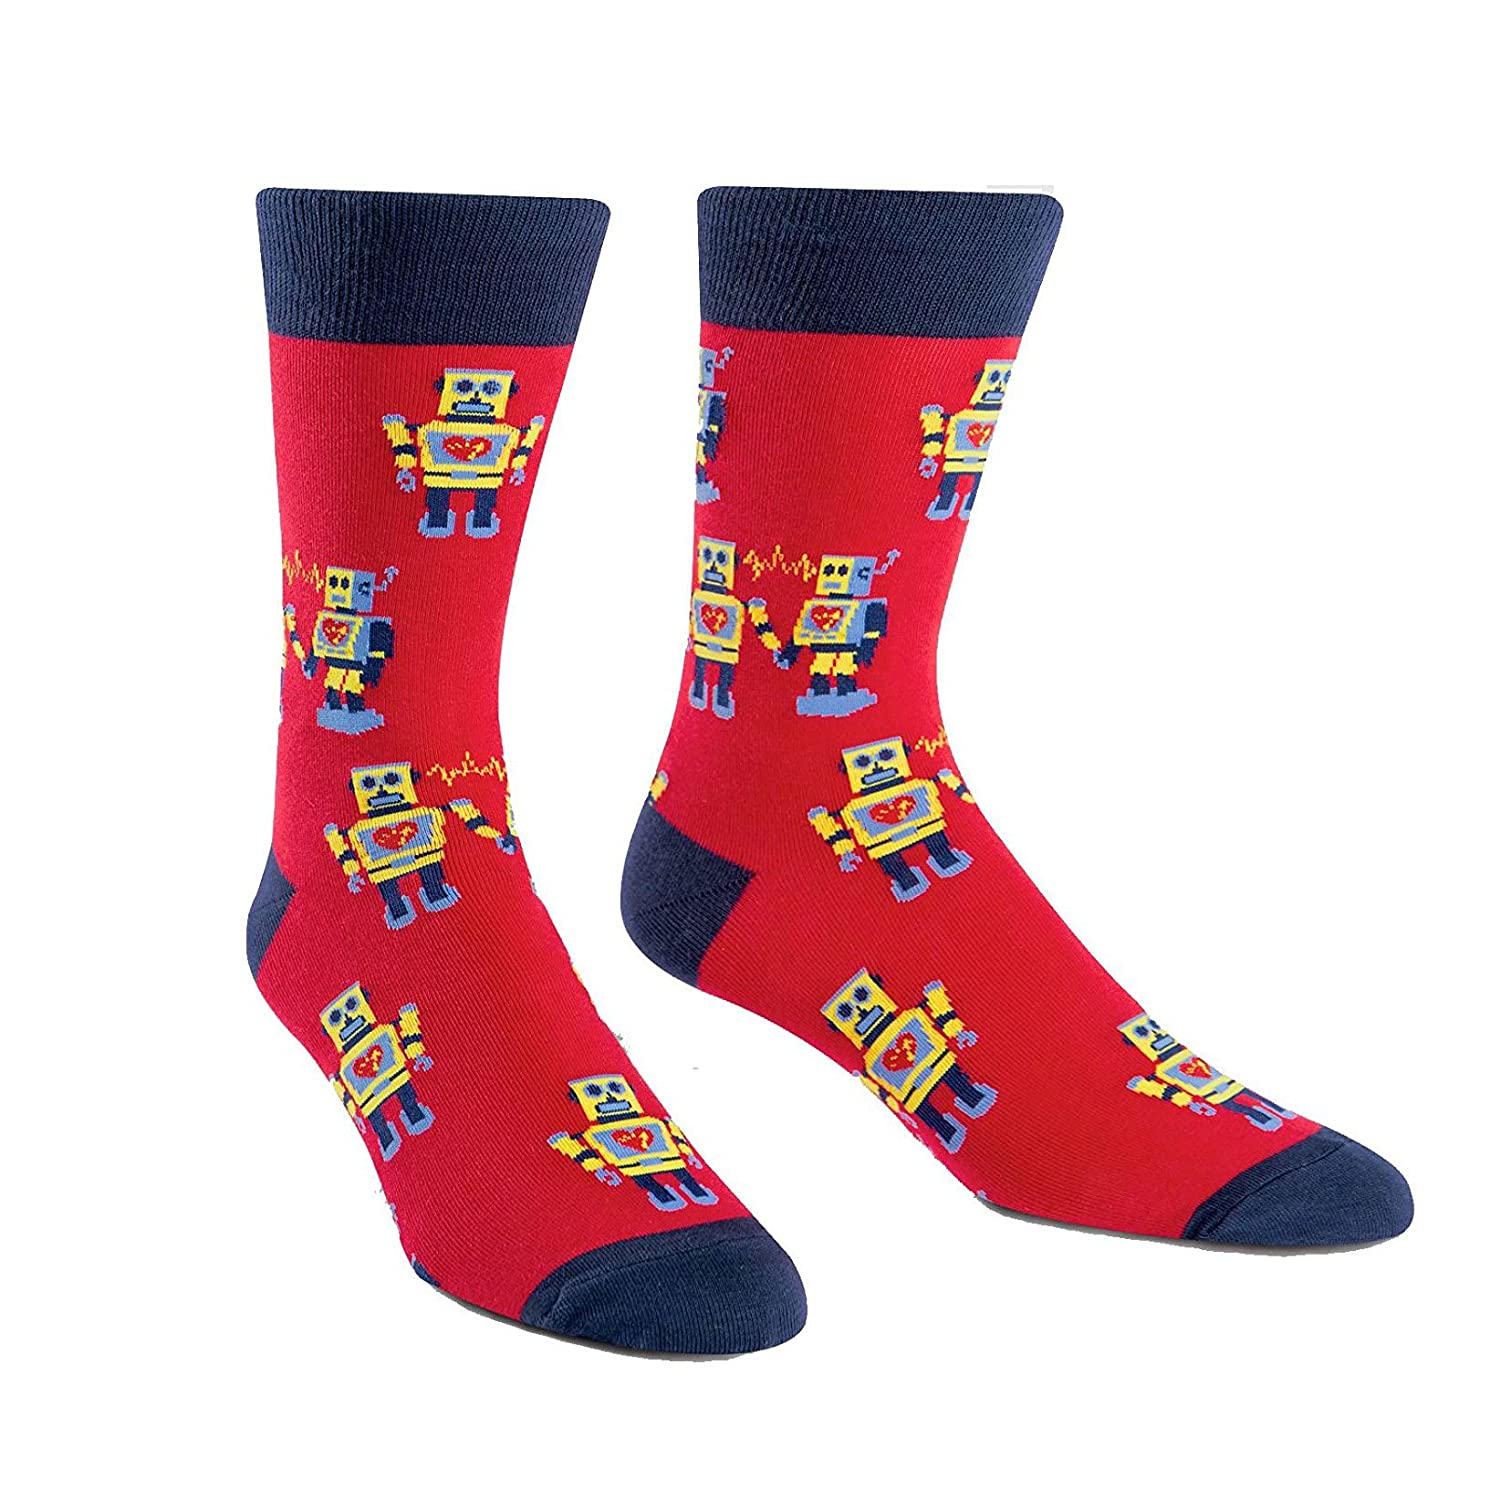 Sock It To Me Men's Robot Love Red Crew Socks Droid Adult Shoe Size 7-13 MEF0176